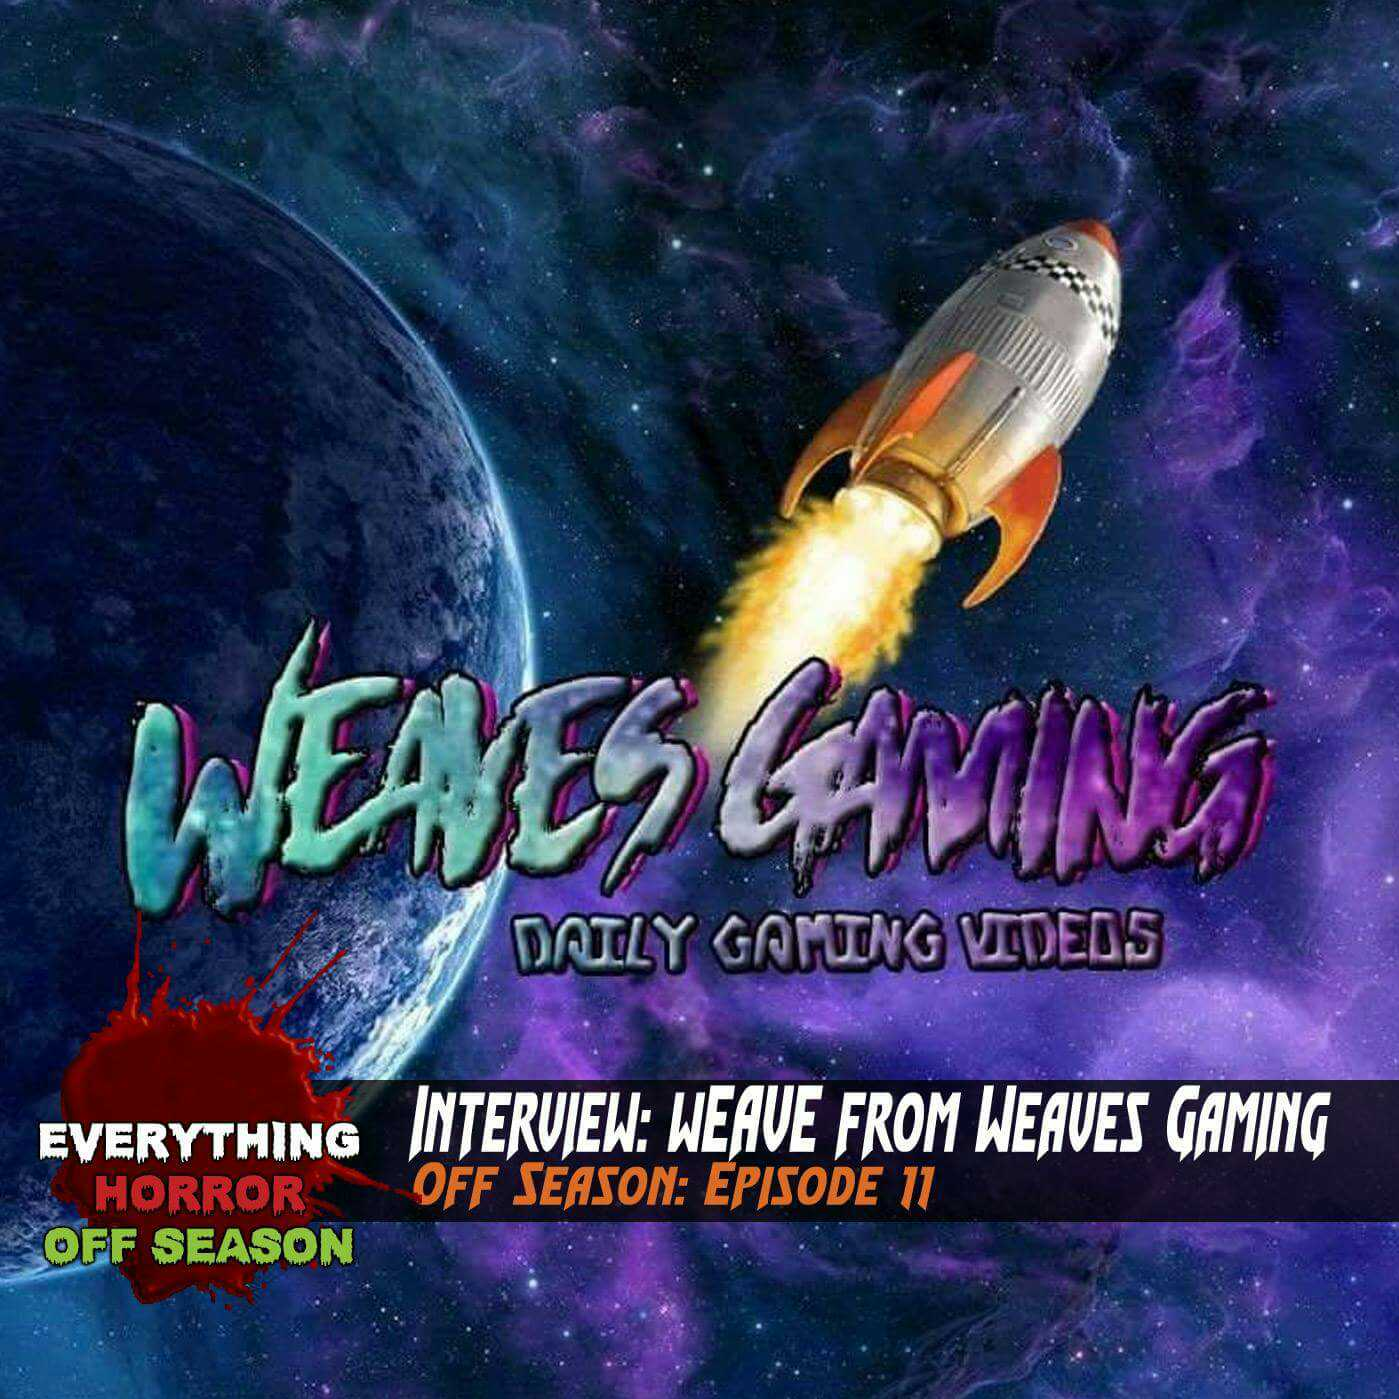 Off Season: Episode 11 - Interview Weave from Weaves Gaming